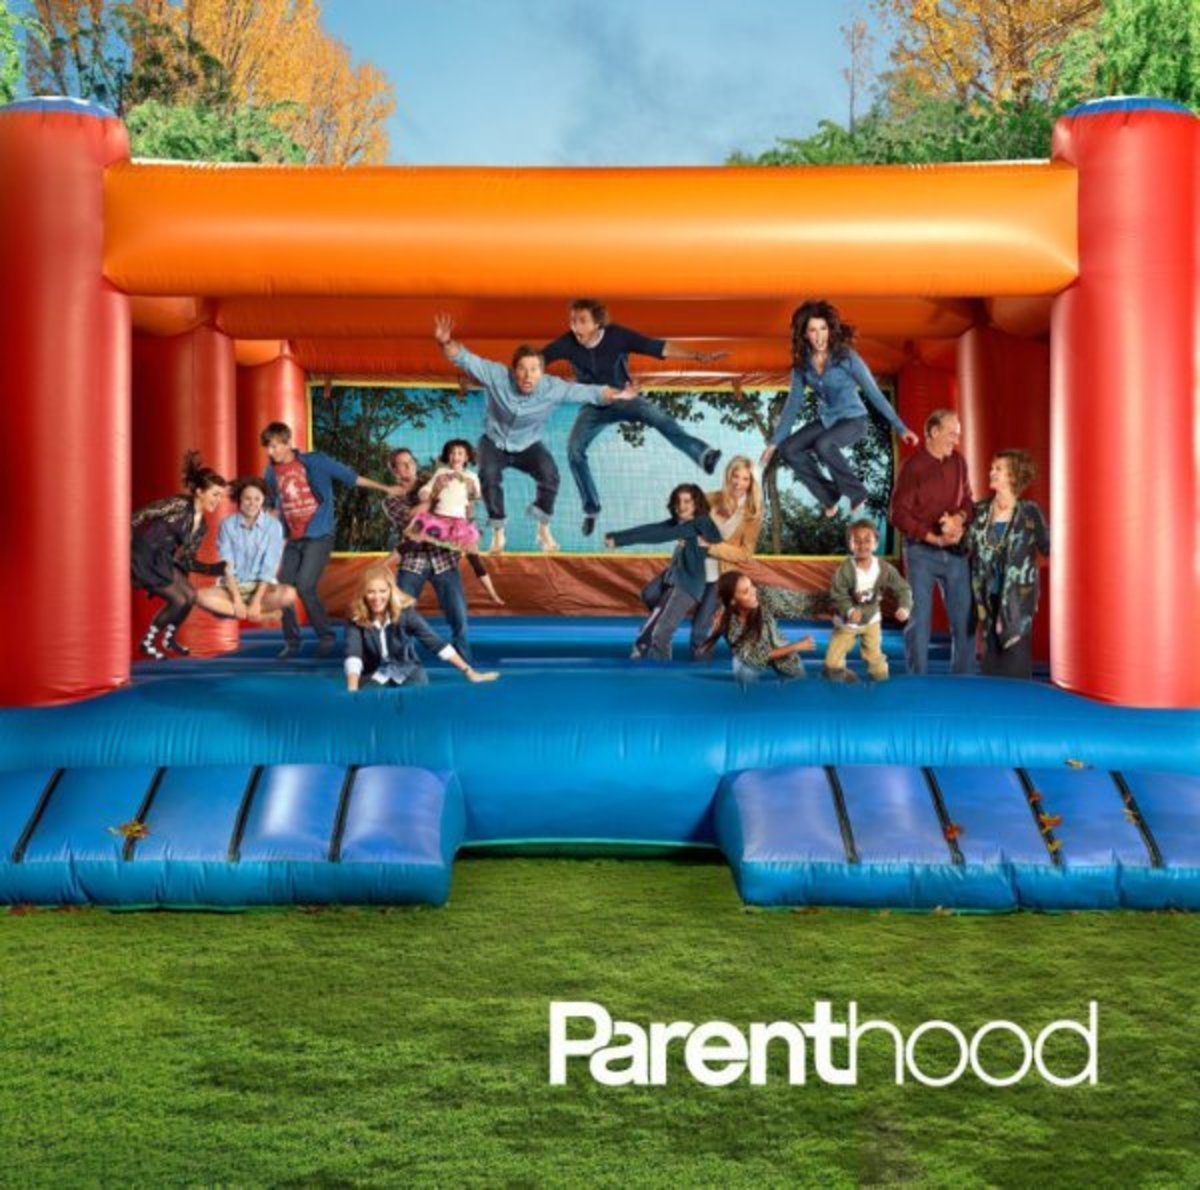 NBC's Parenthood: How NOT to Parent a Kid with Asperger's